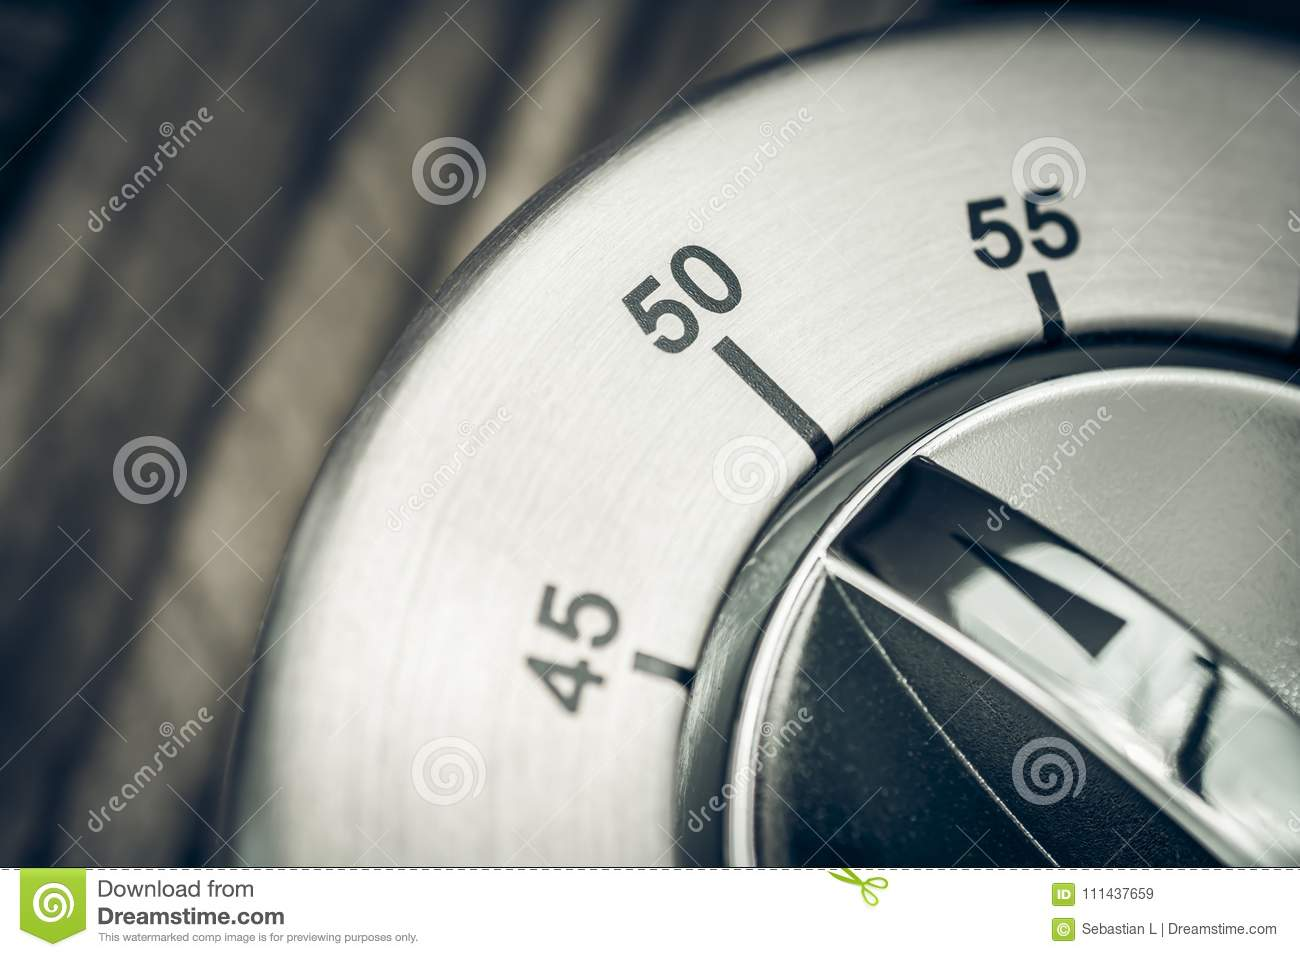 50 Minutes - Macro Of An Analog Chrome Kitchen Timer On Wooden T